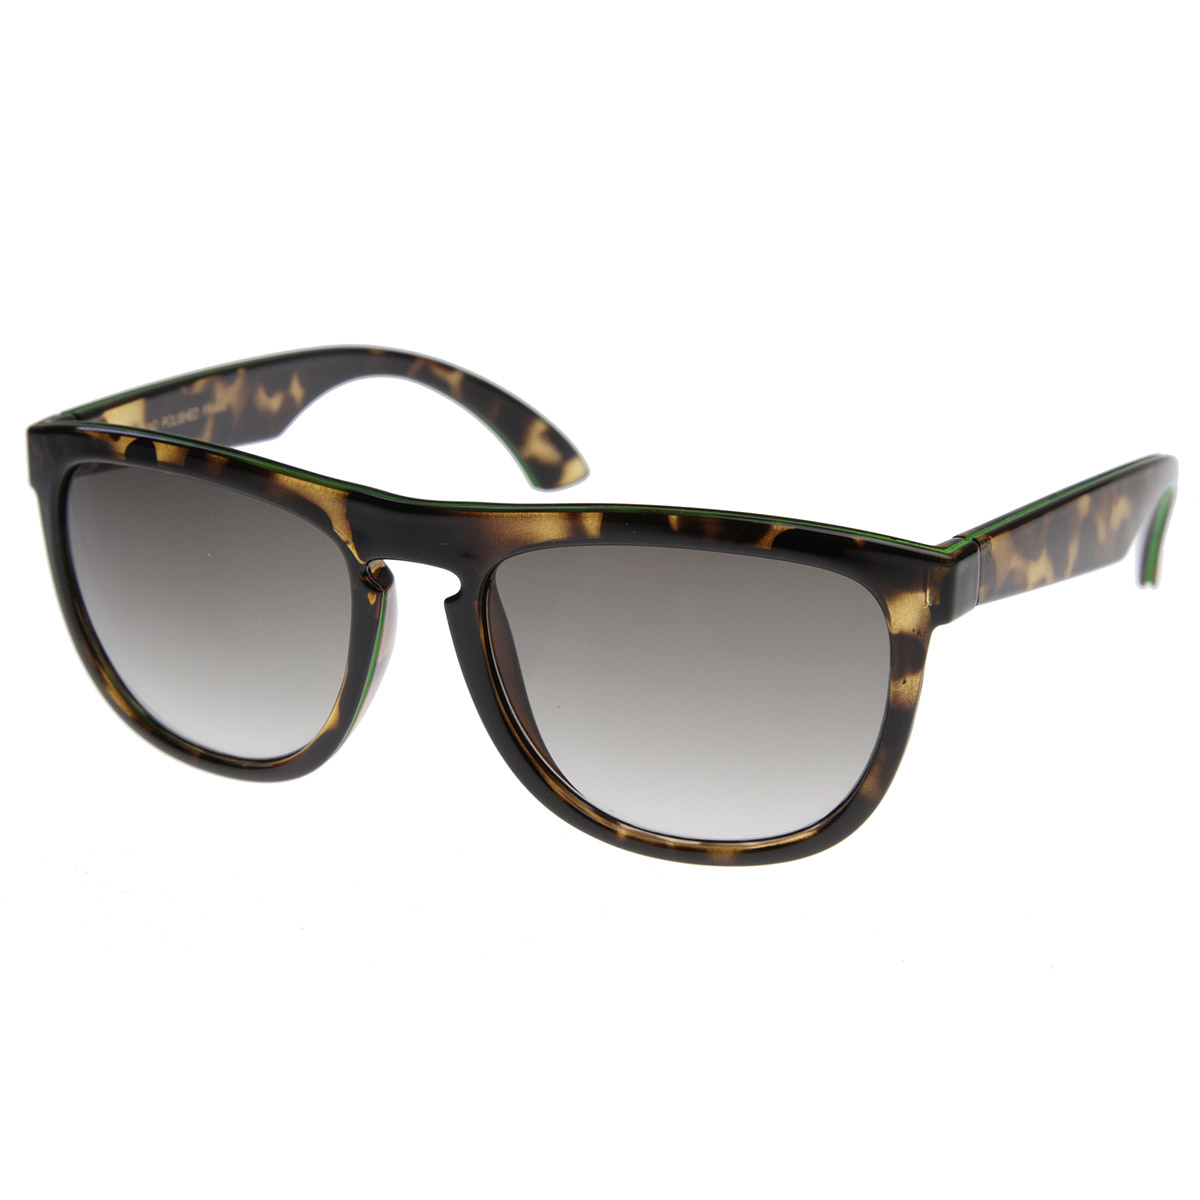 New-Custom-Vintage-Inspired-Two-Tone-Color-Key-Hole-Bridge-Horn-Rimmed-Style